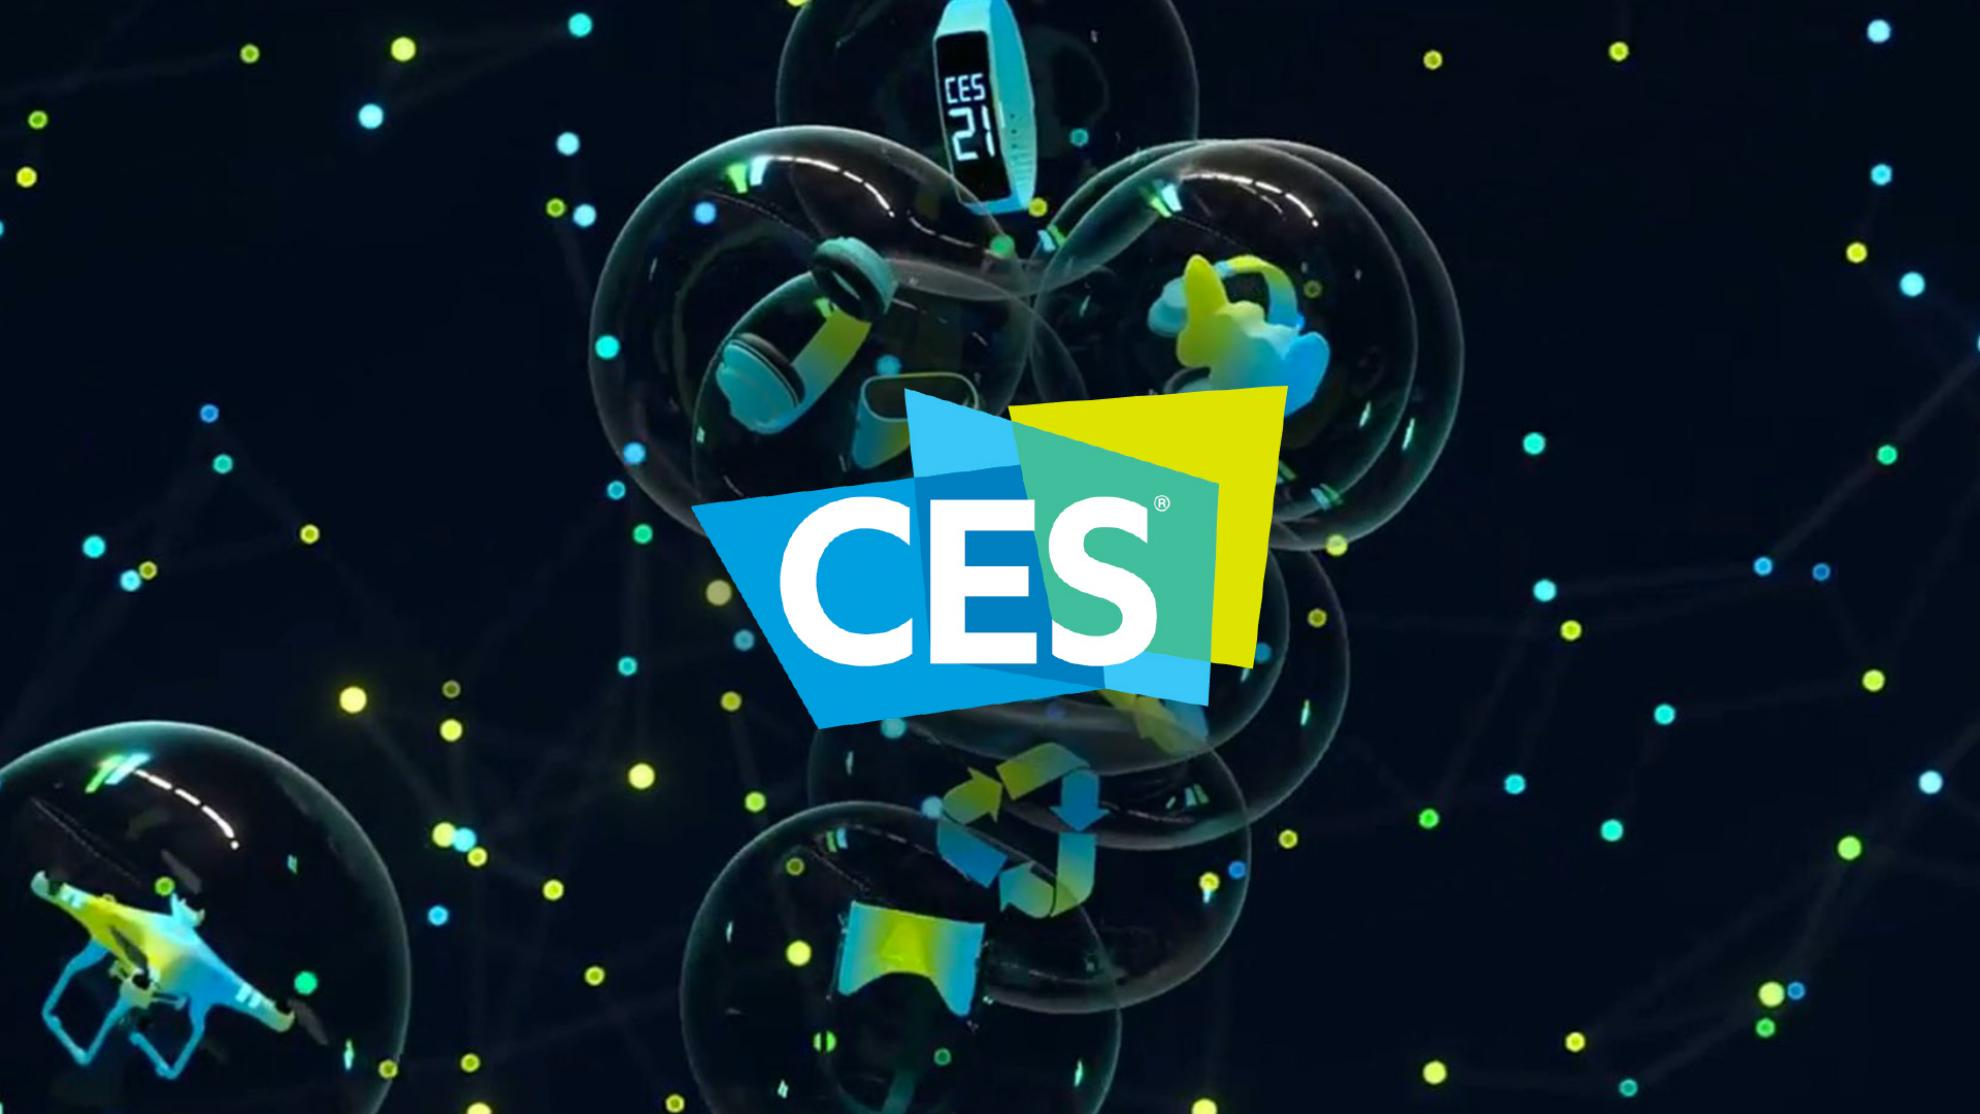 CES 2021 key visual